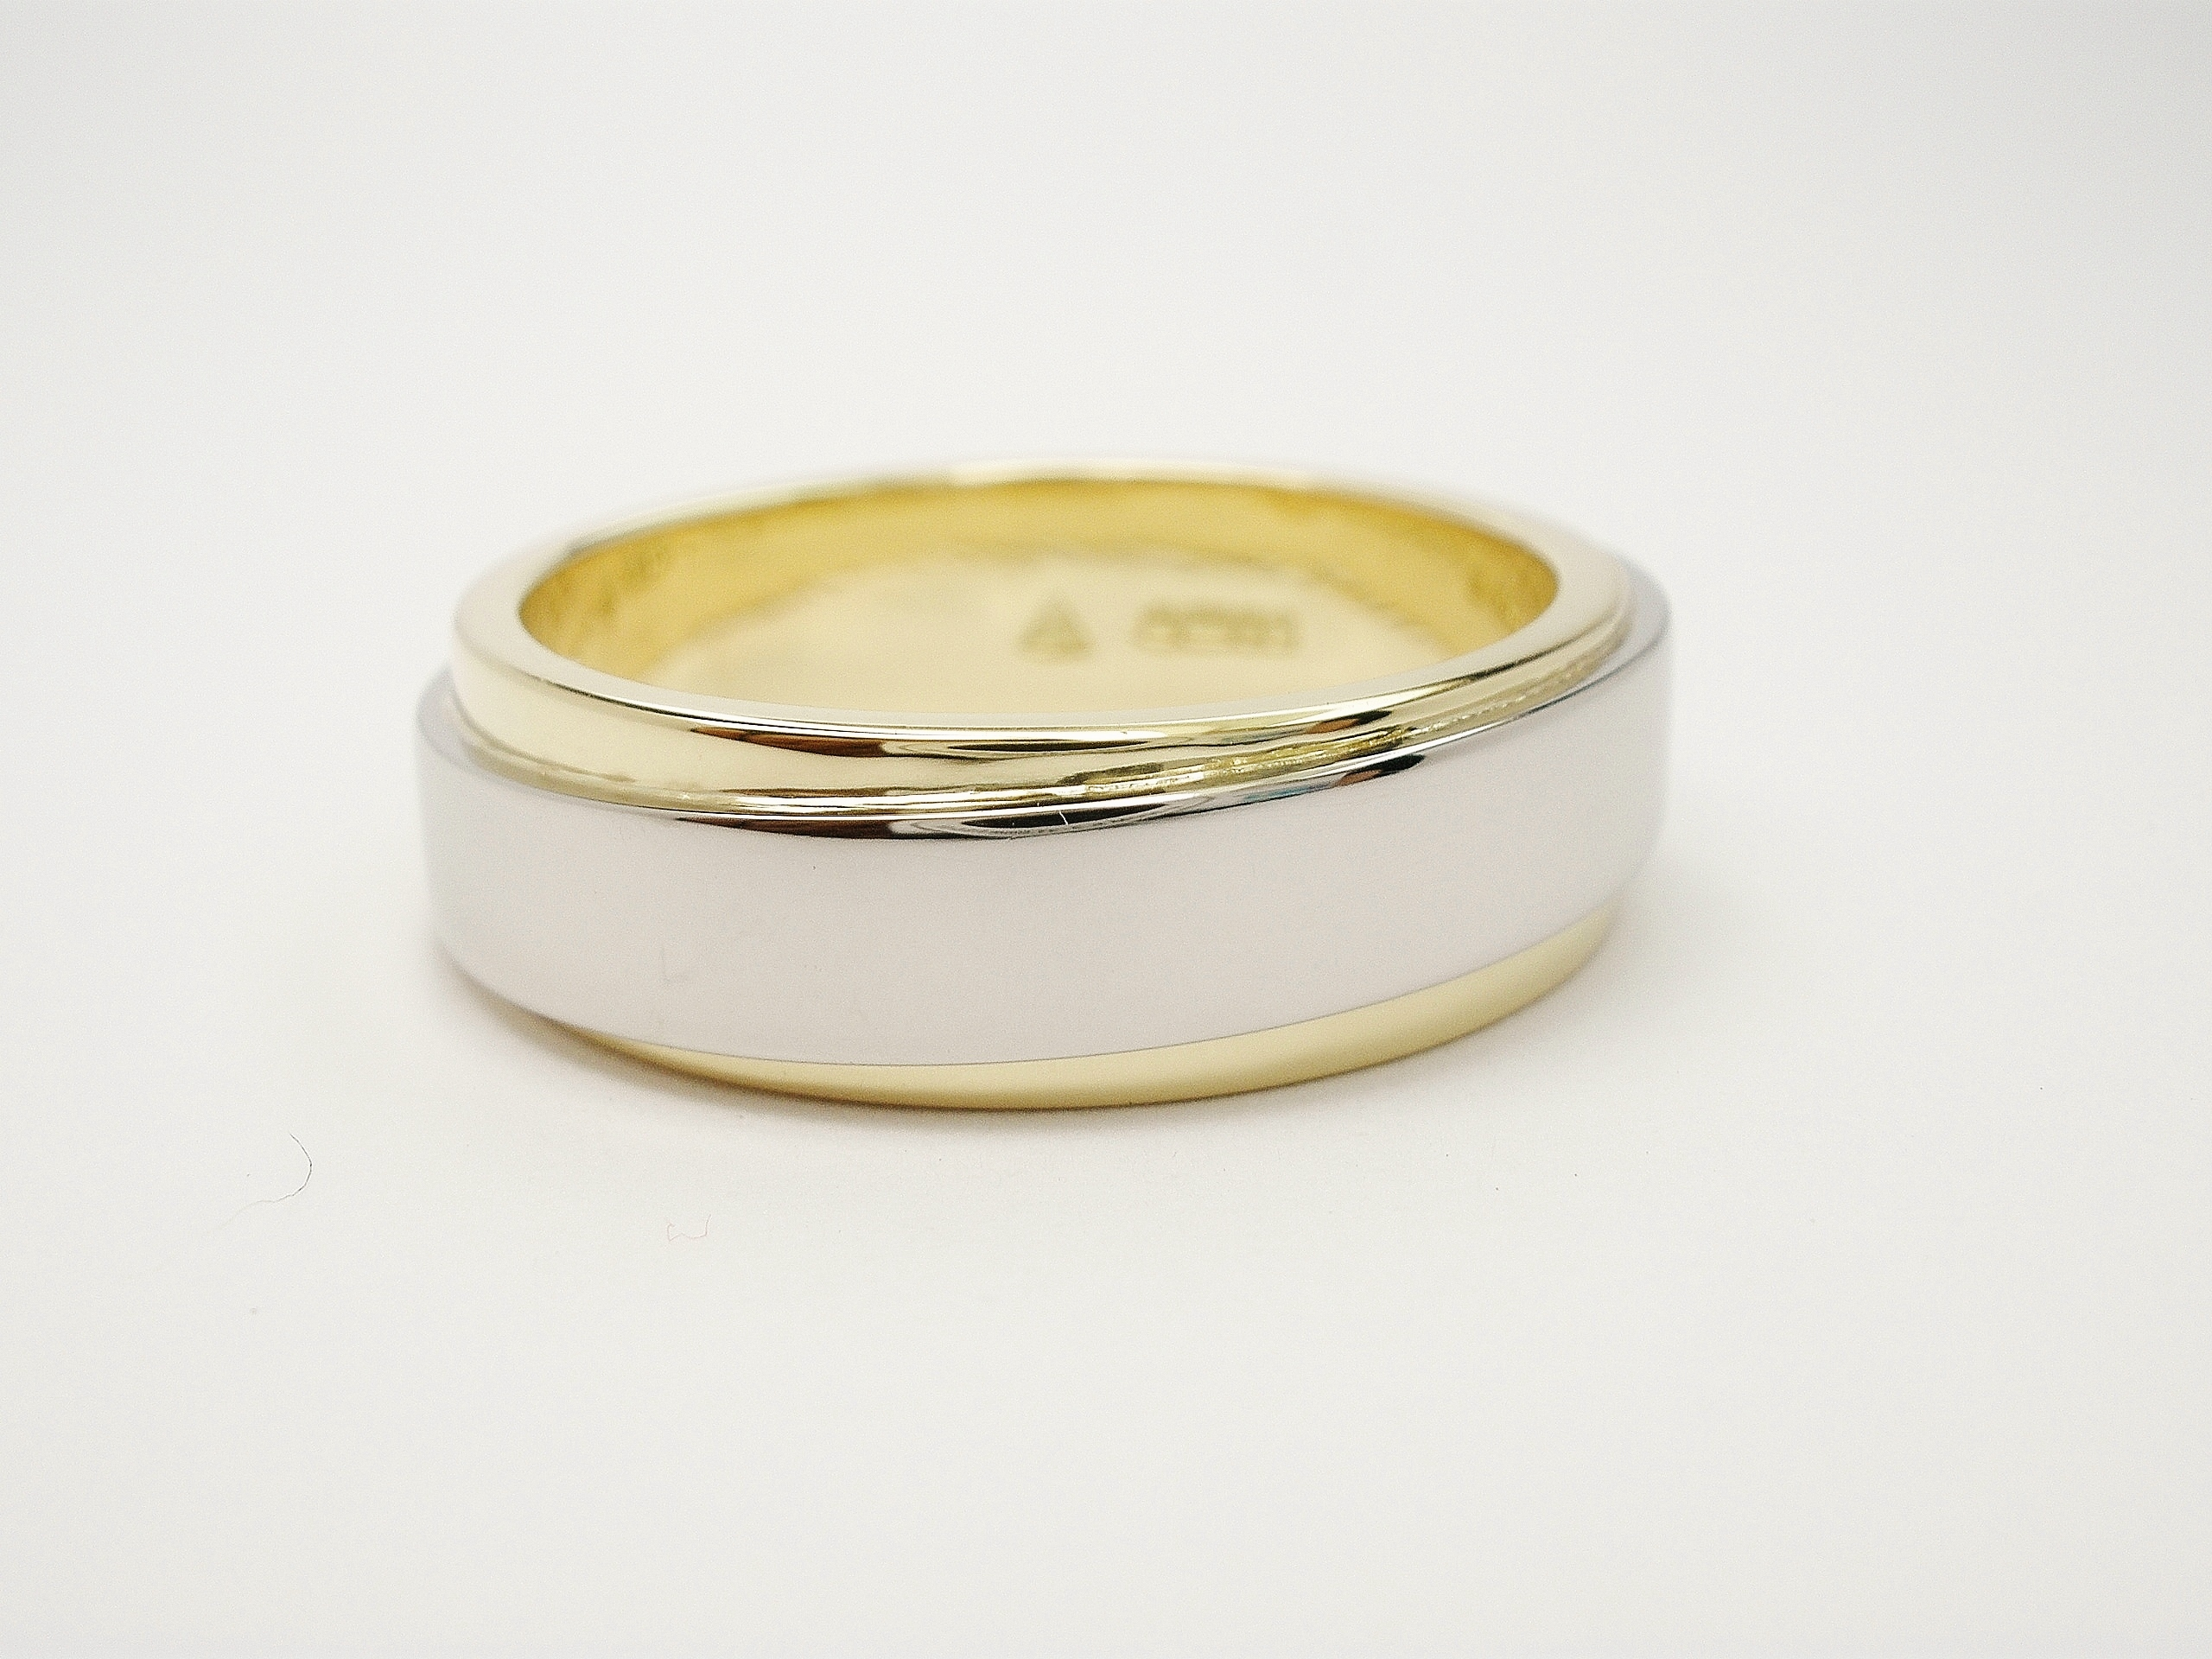 18ct. yellow gold & platinum gents 2 tone wedding ring. The broad yellow ring is overlaid with a narrower platinum 'orbitally' positioned band.